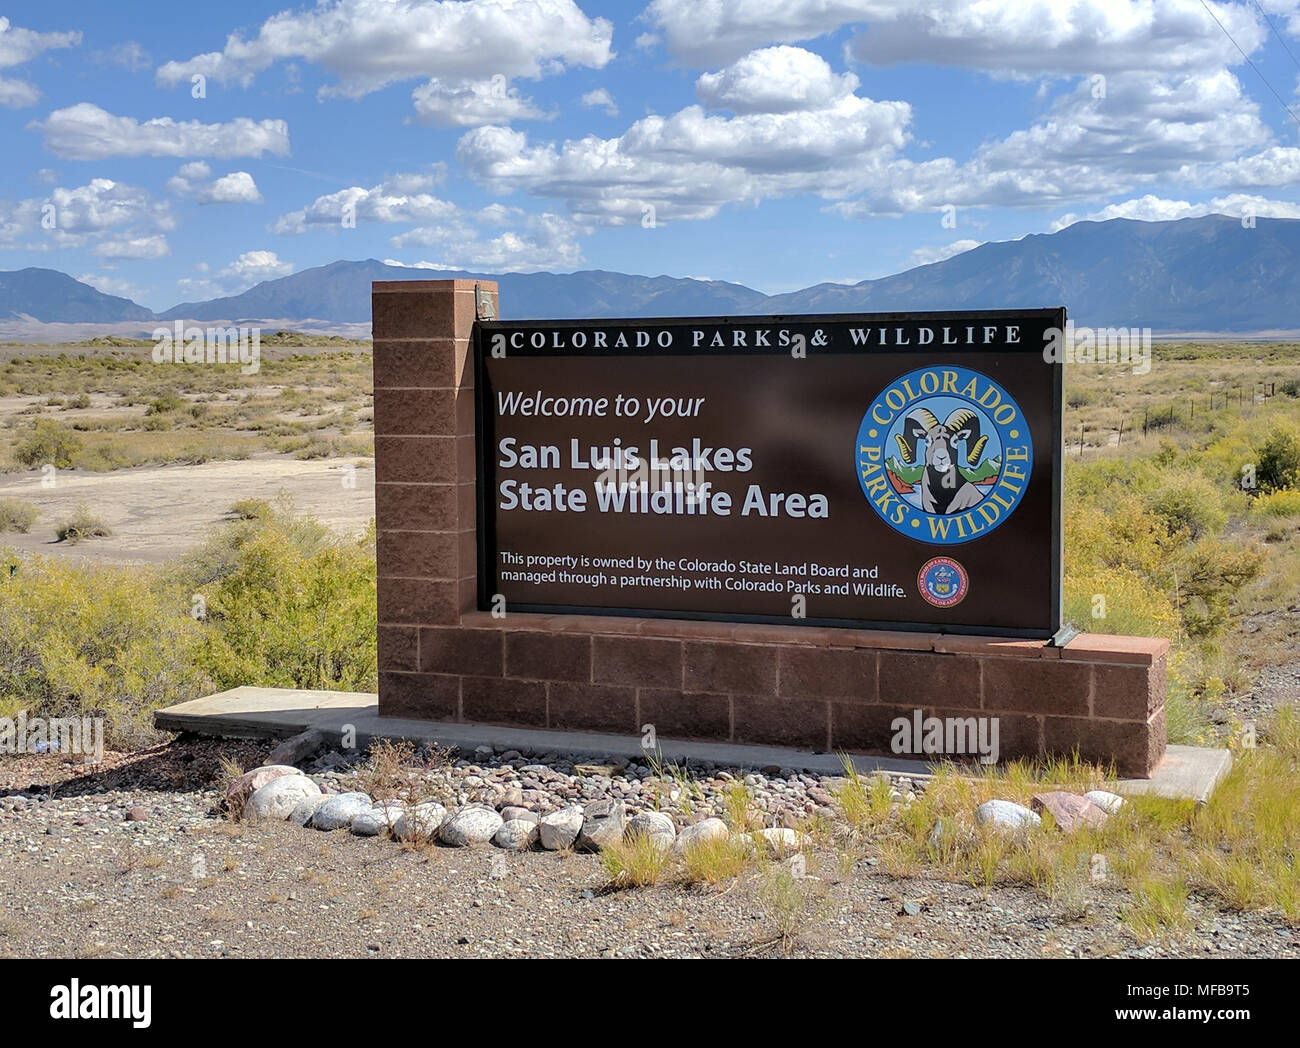 San Luis Lakes State Wildlife Area overlooks the Great Sand Dunes National Park.  The park is home to enormous sand dunes up to 700 feet high, an unus - Stock Image